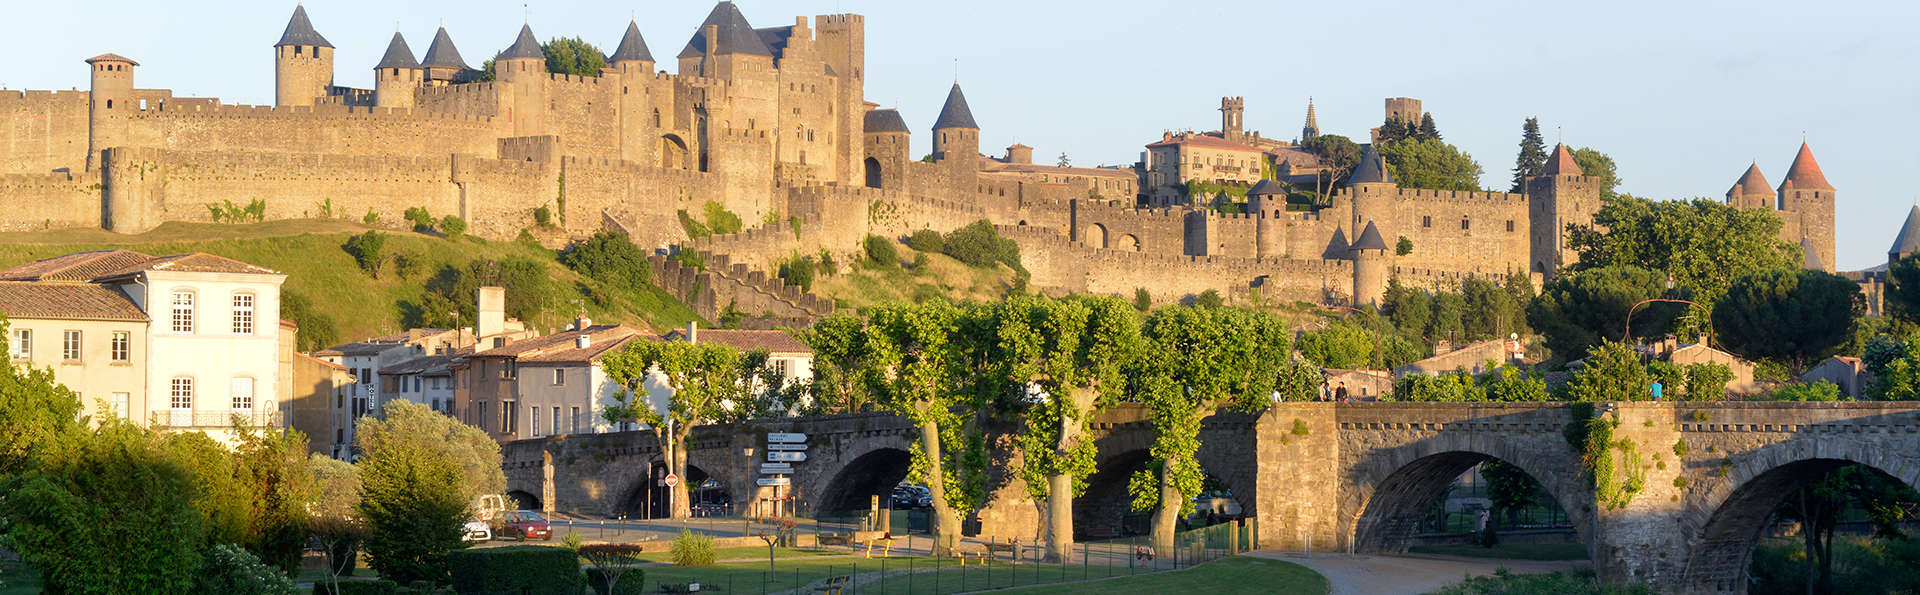 Week-end en appartement jusqu'à 4 personnes à Carcassonne